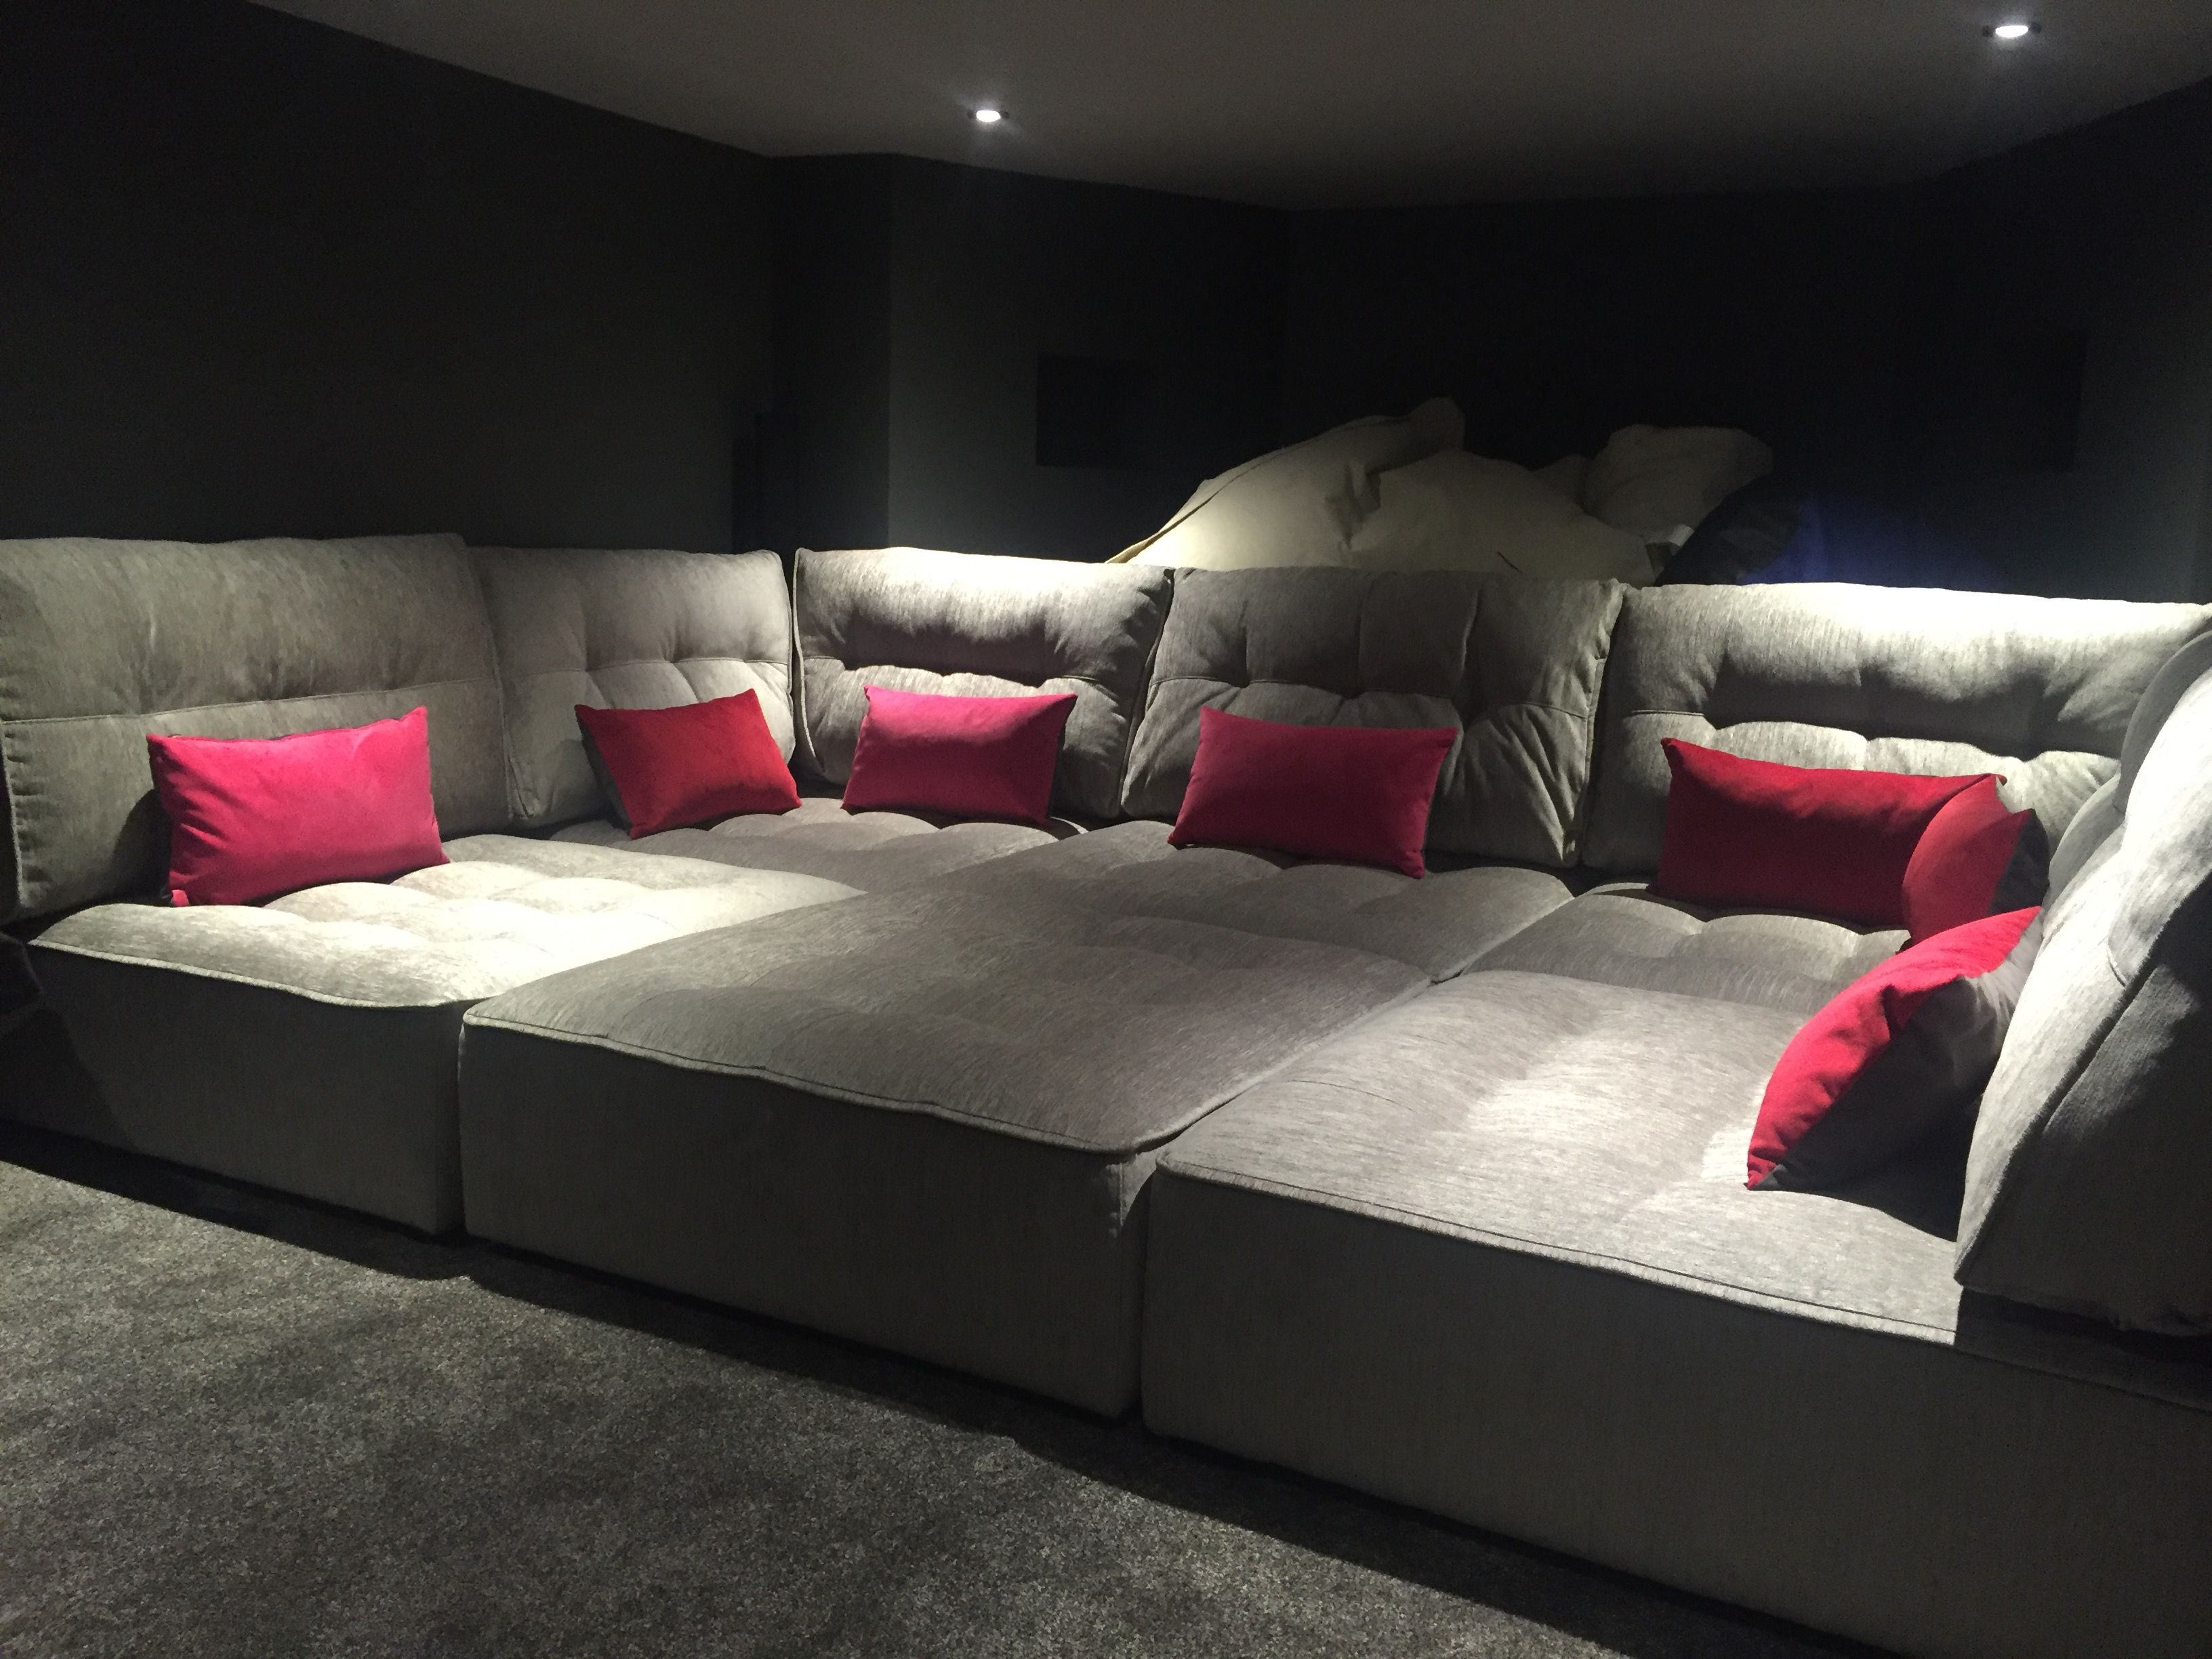 Chill Out Möbel Tapas In A Basement Media Room Perfect For The Family To Chill